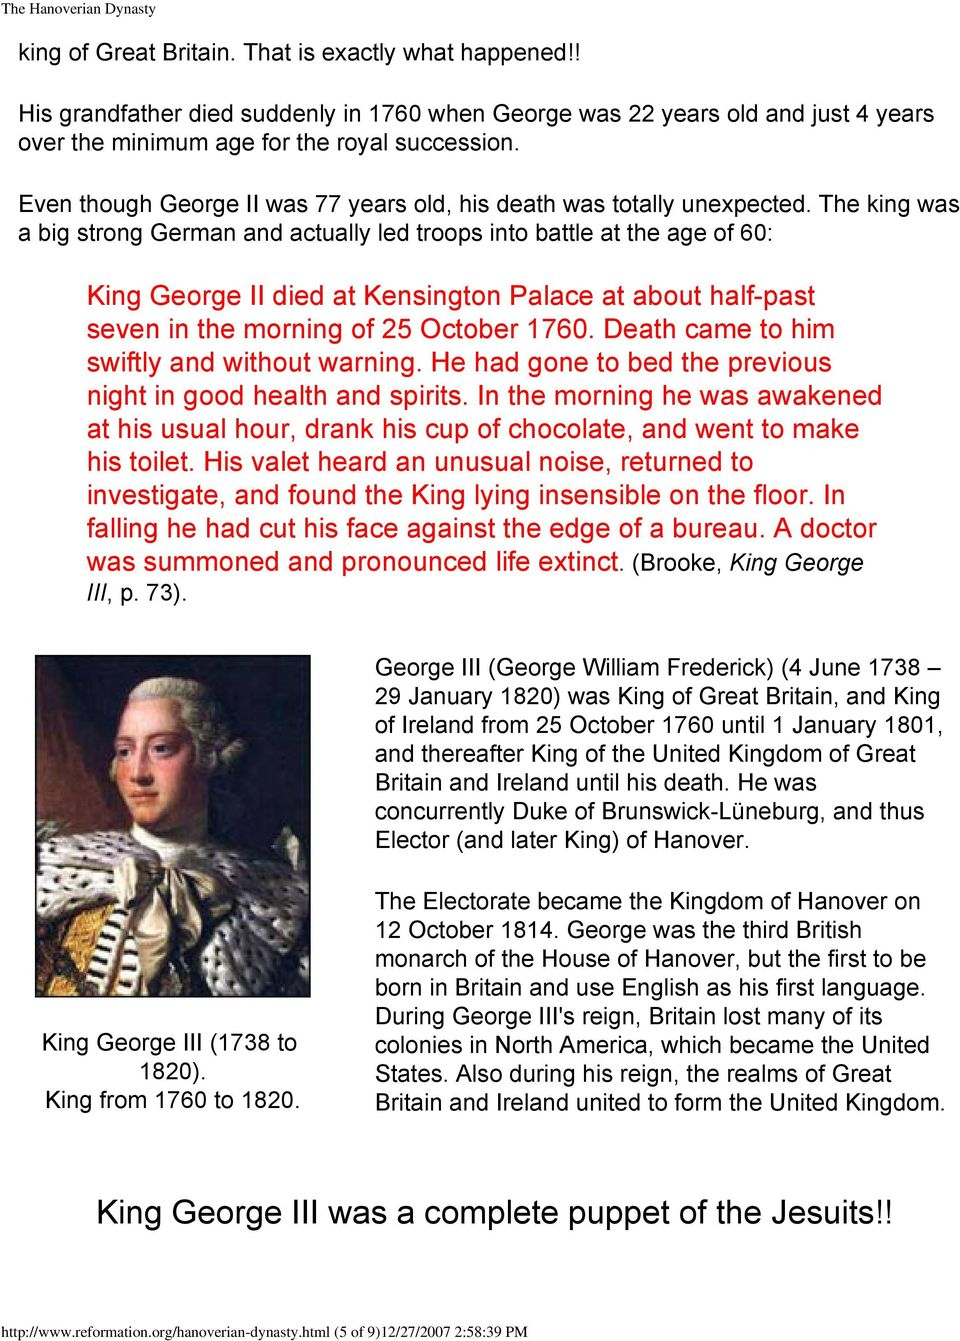 The king was a big strong German and actually led troops into battle at the age of 60: George II died at Kensington Palace at about half-past seven in the morning of 25 October 1760.